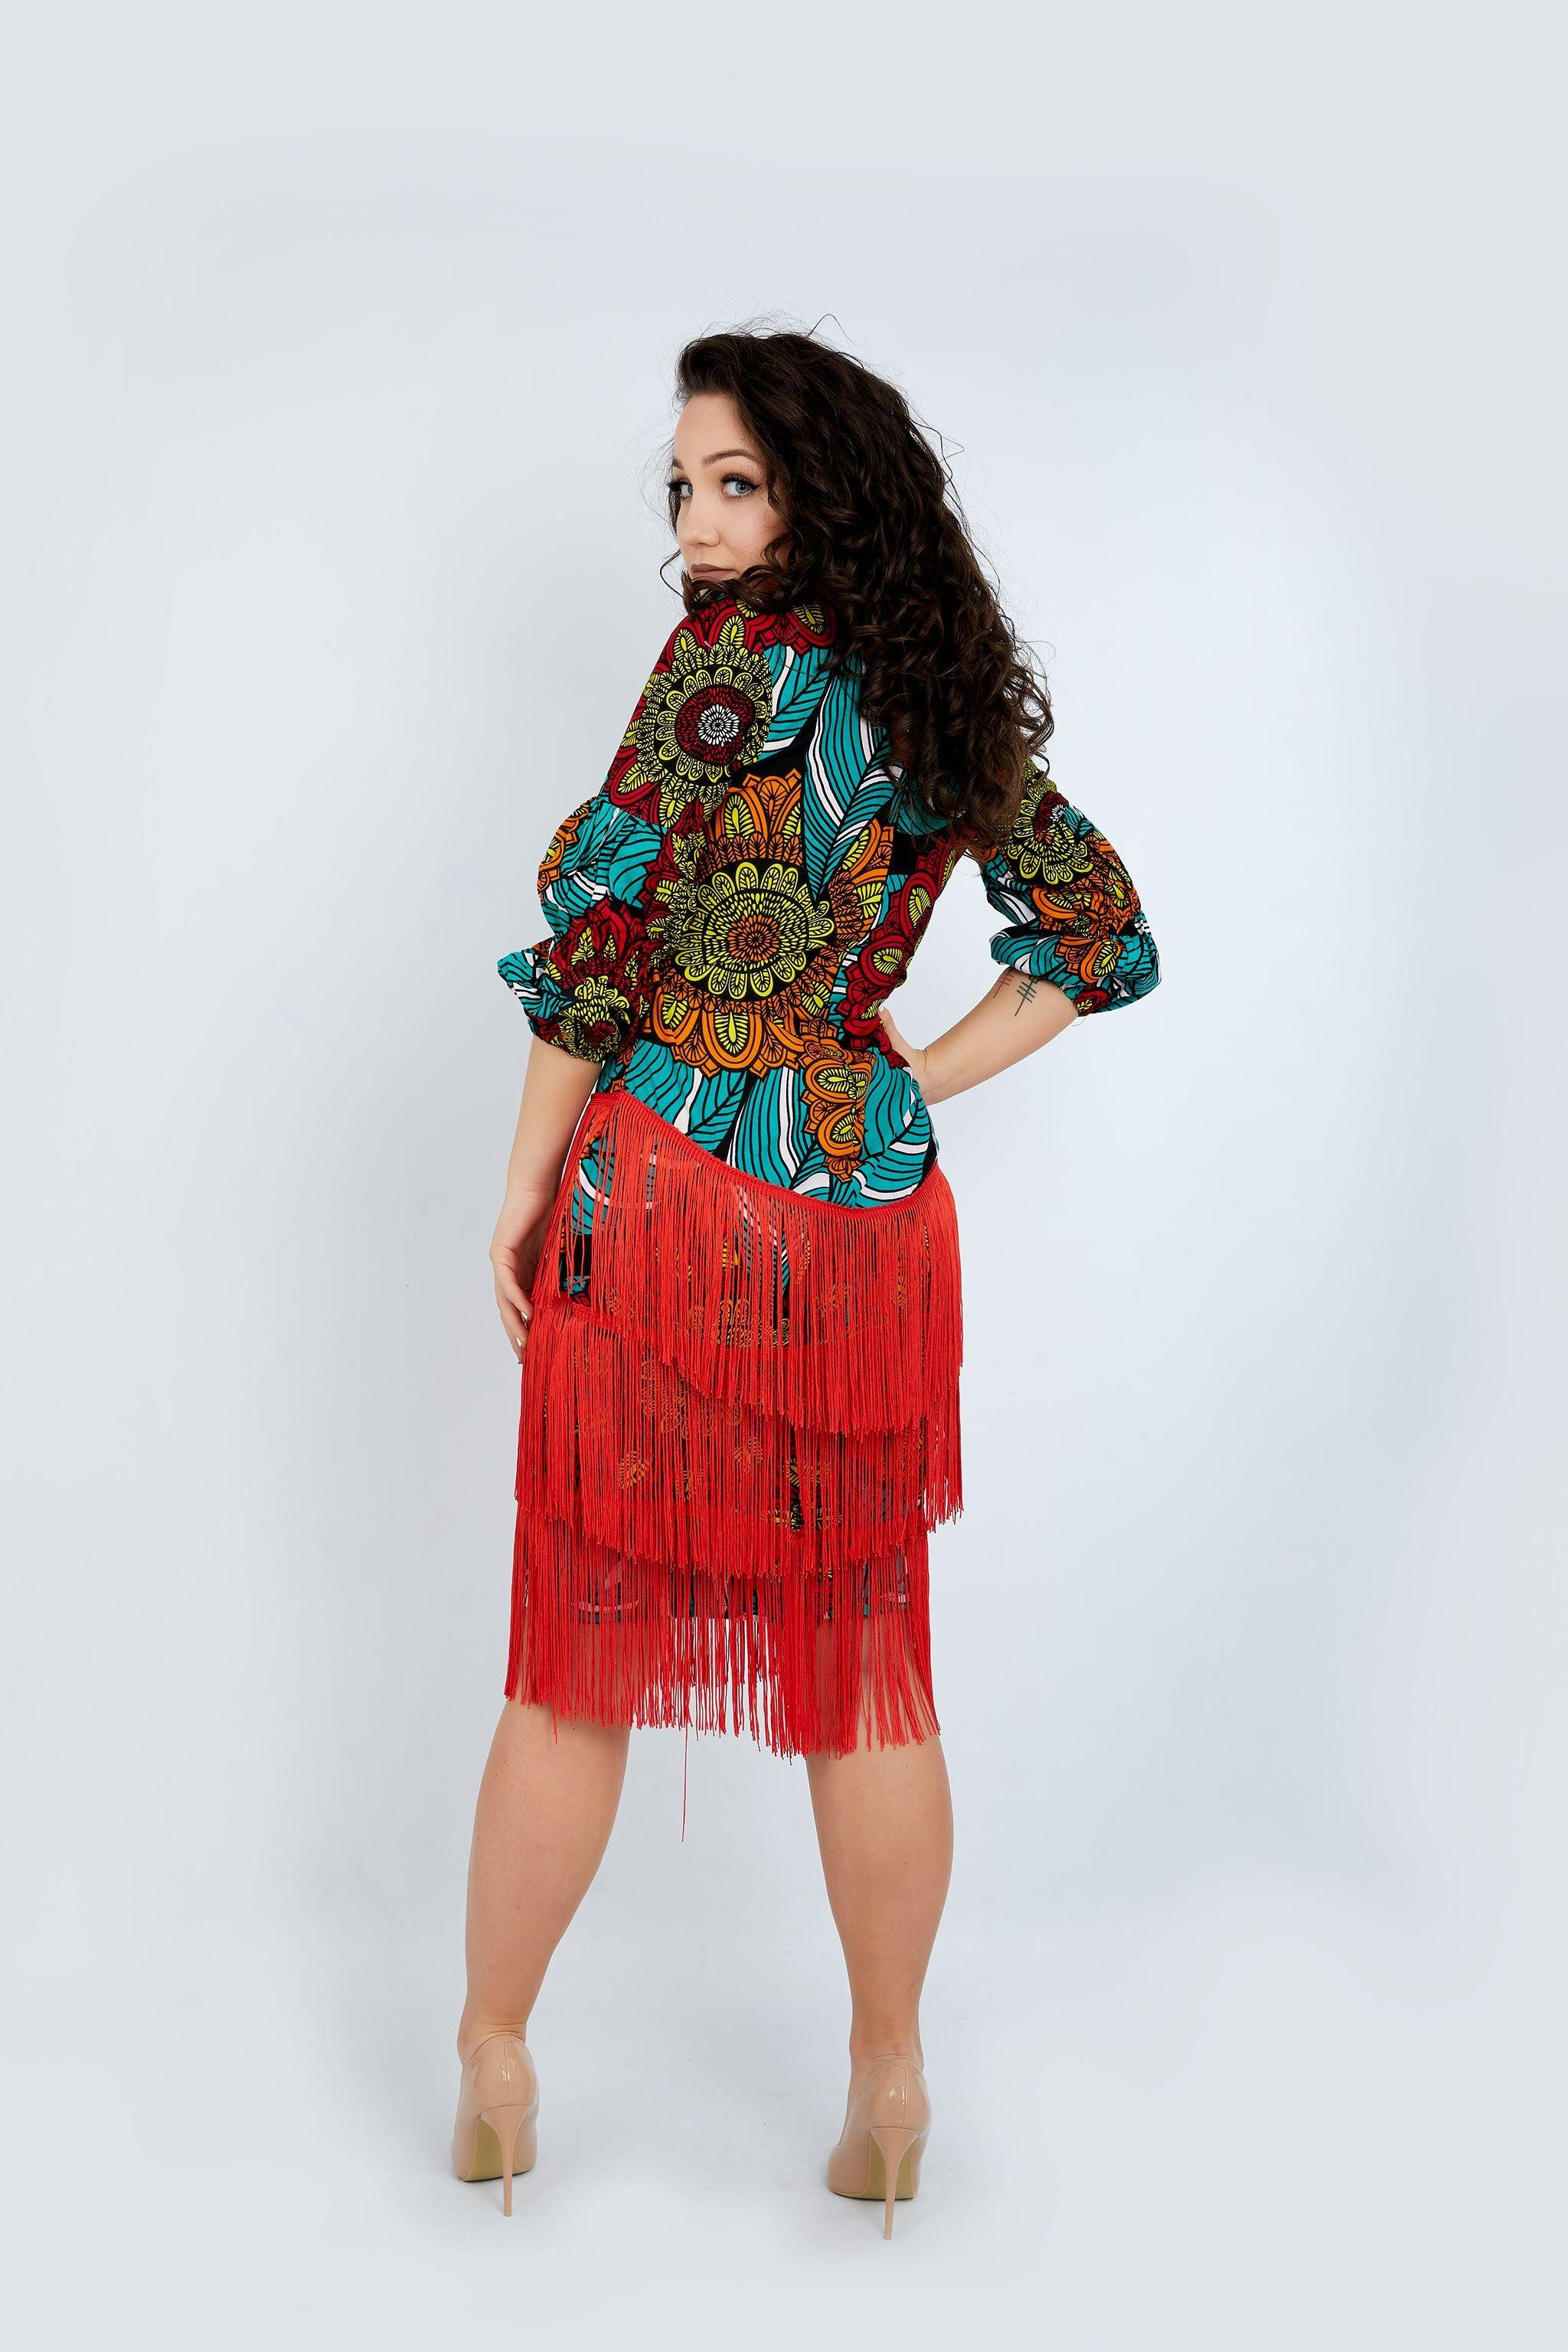 WAA - Ankara Fringe Dress - waafashion